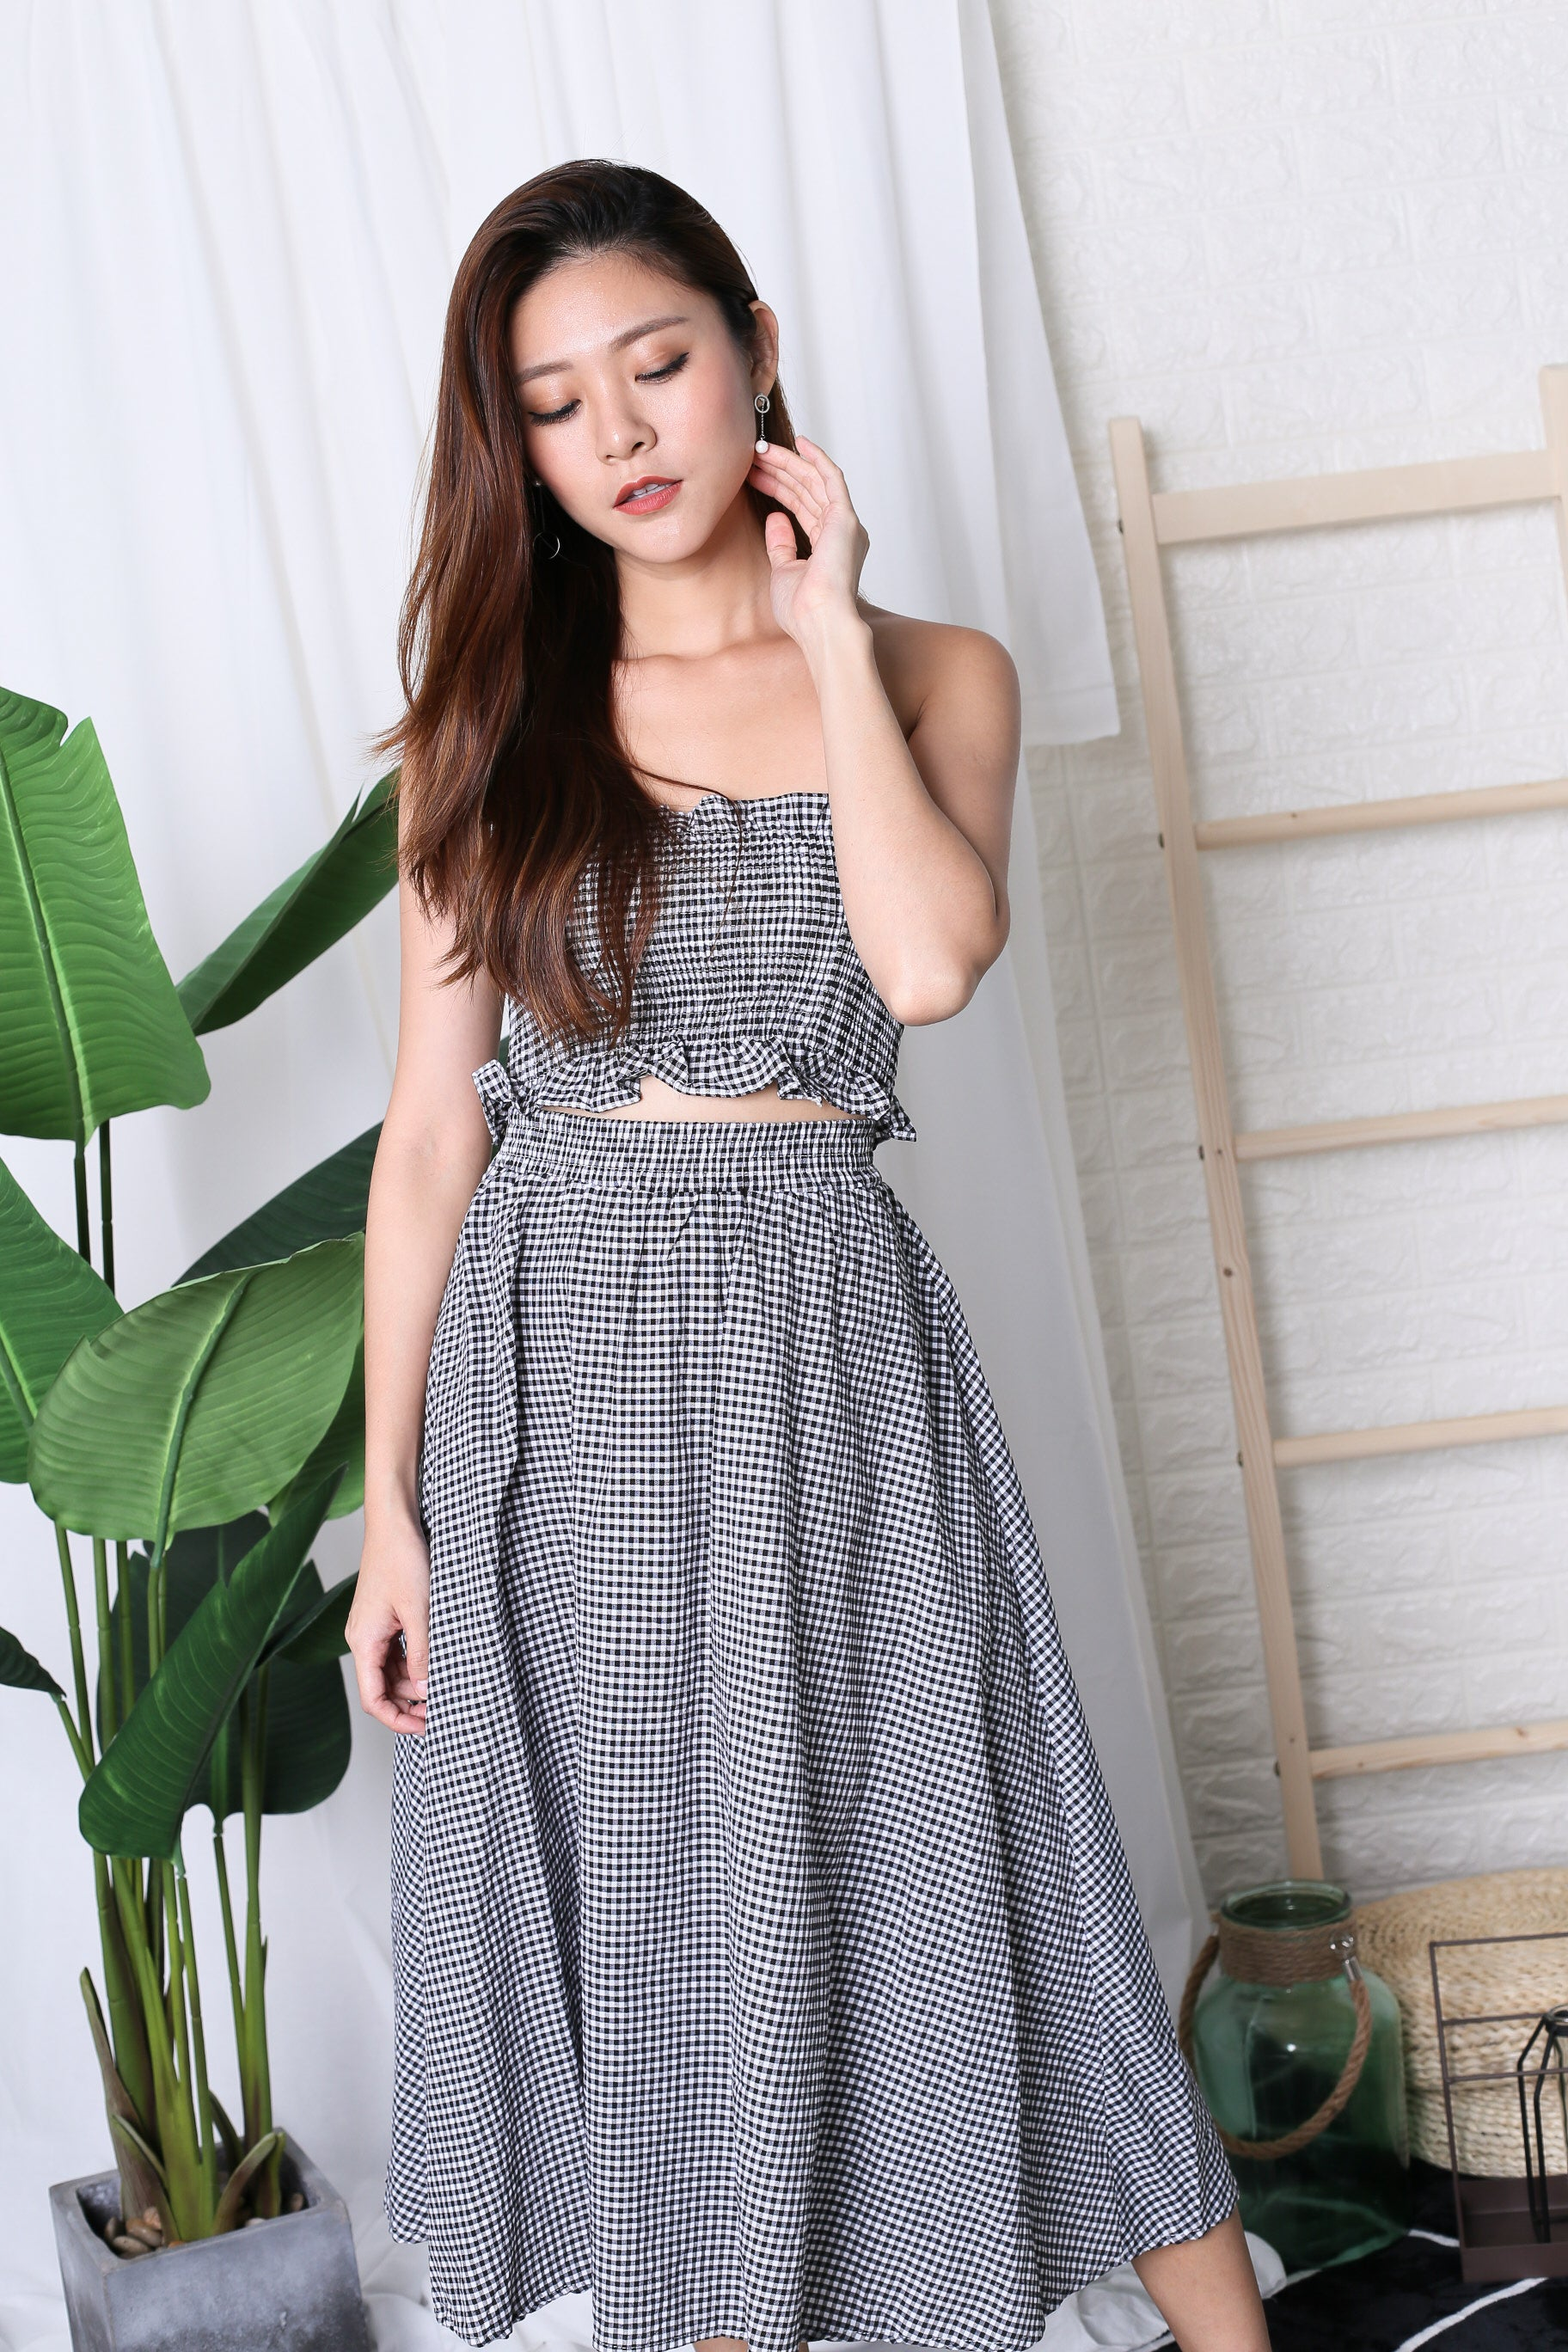 GINGHAM PICNIC SMOCKED TOP AND MIDI SET IN BLACK